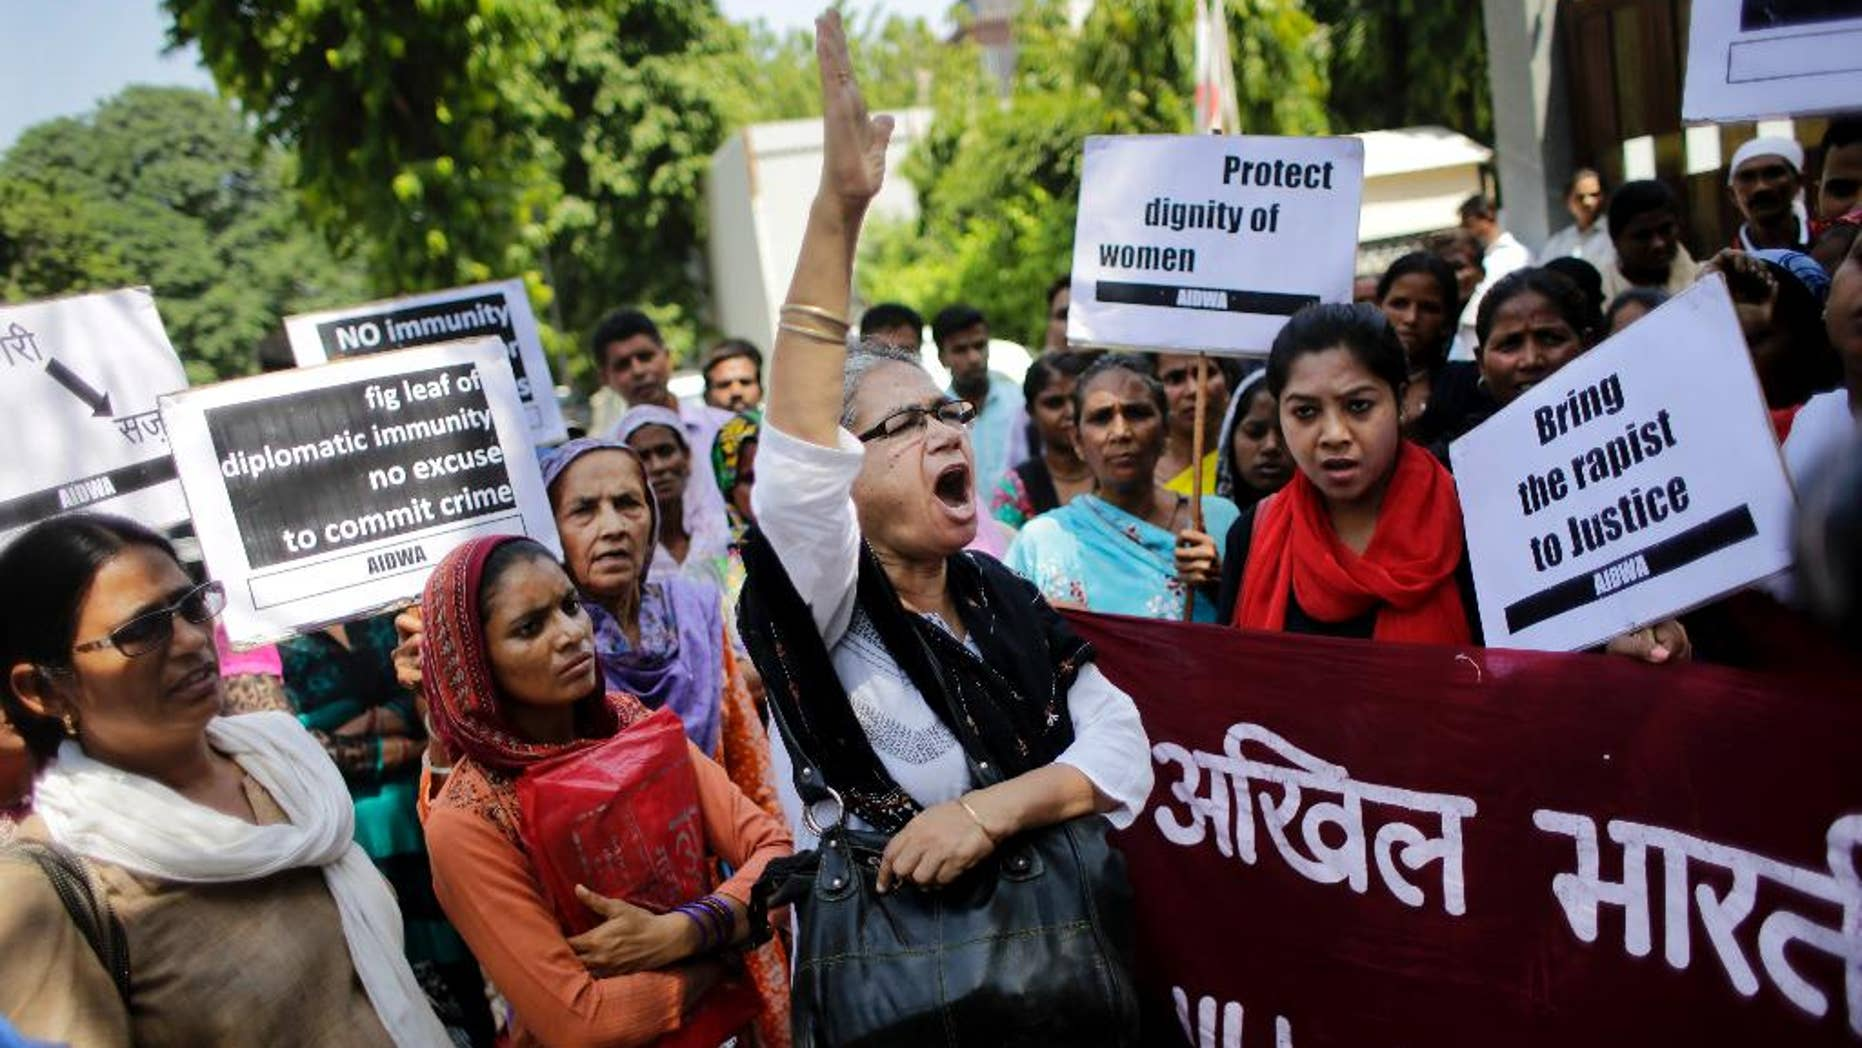 FILE - In this Thursday, Sept. 10, 2015 file photo, activists of All India Democratic Women's Association shout slogans during a protest outside the Saudi Arabian embassy in New Delhi, India. Indian officials say a Saudi Arabian diplomat accused of repeatedly raping and abusing two women has left India under the cover of diplomatic immunity. (AP Photo/Altaf Qadri, File)